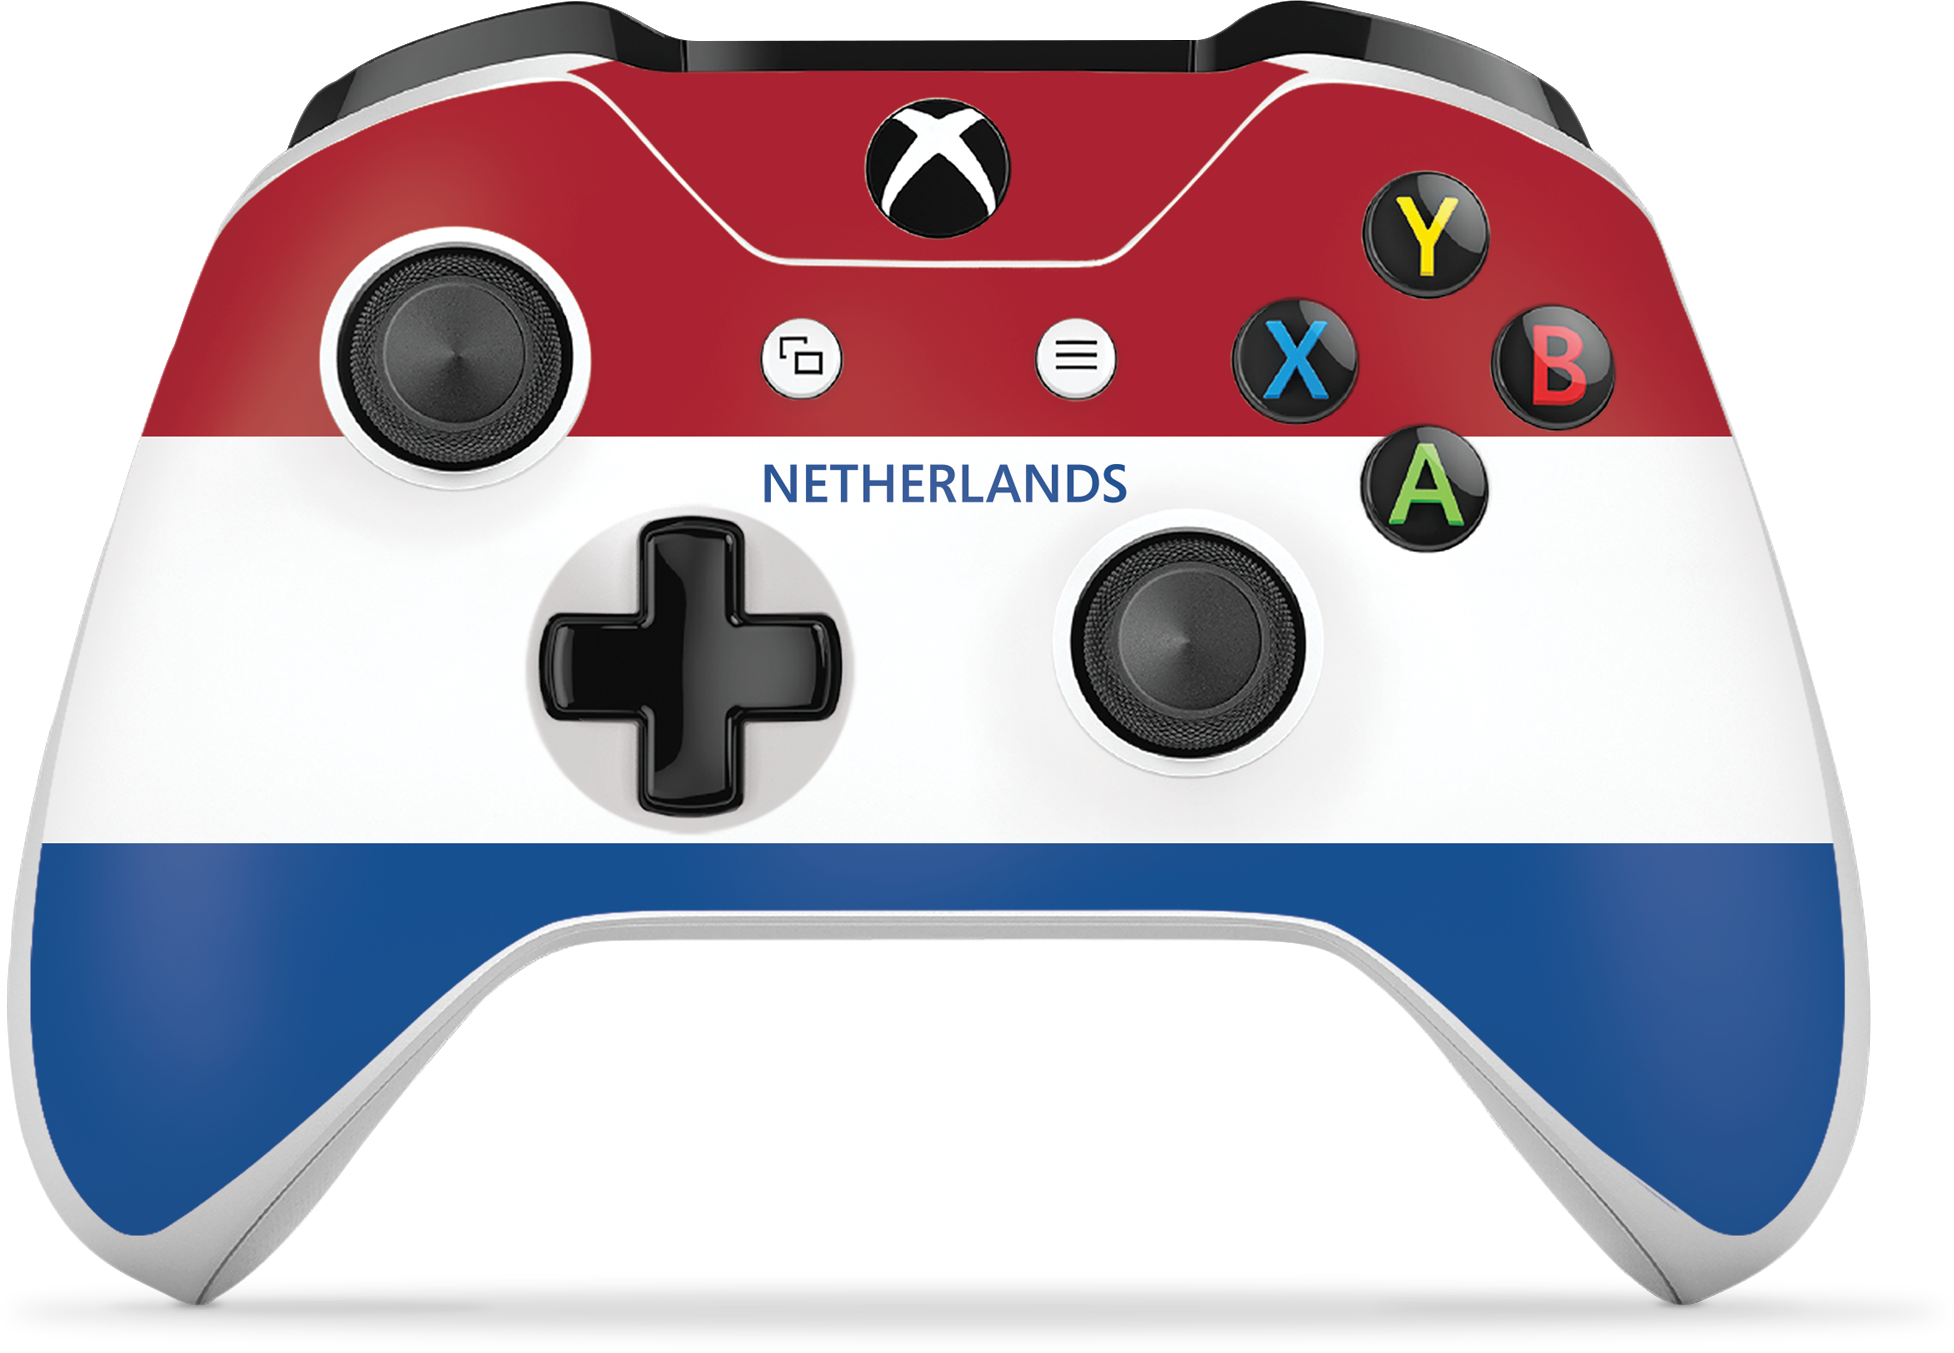 RE1ZcOX?ver=ccb5 - Controller Gear World's Game Controller Skins (Netherlands)